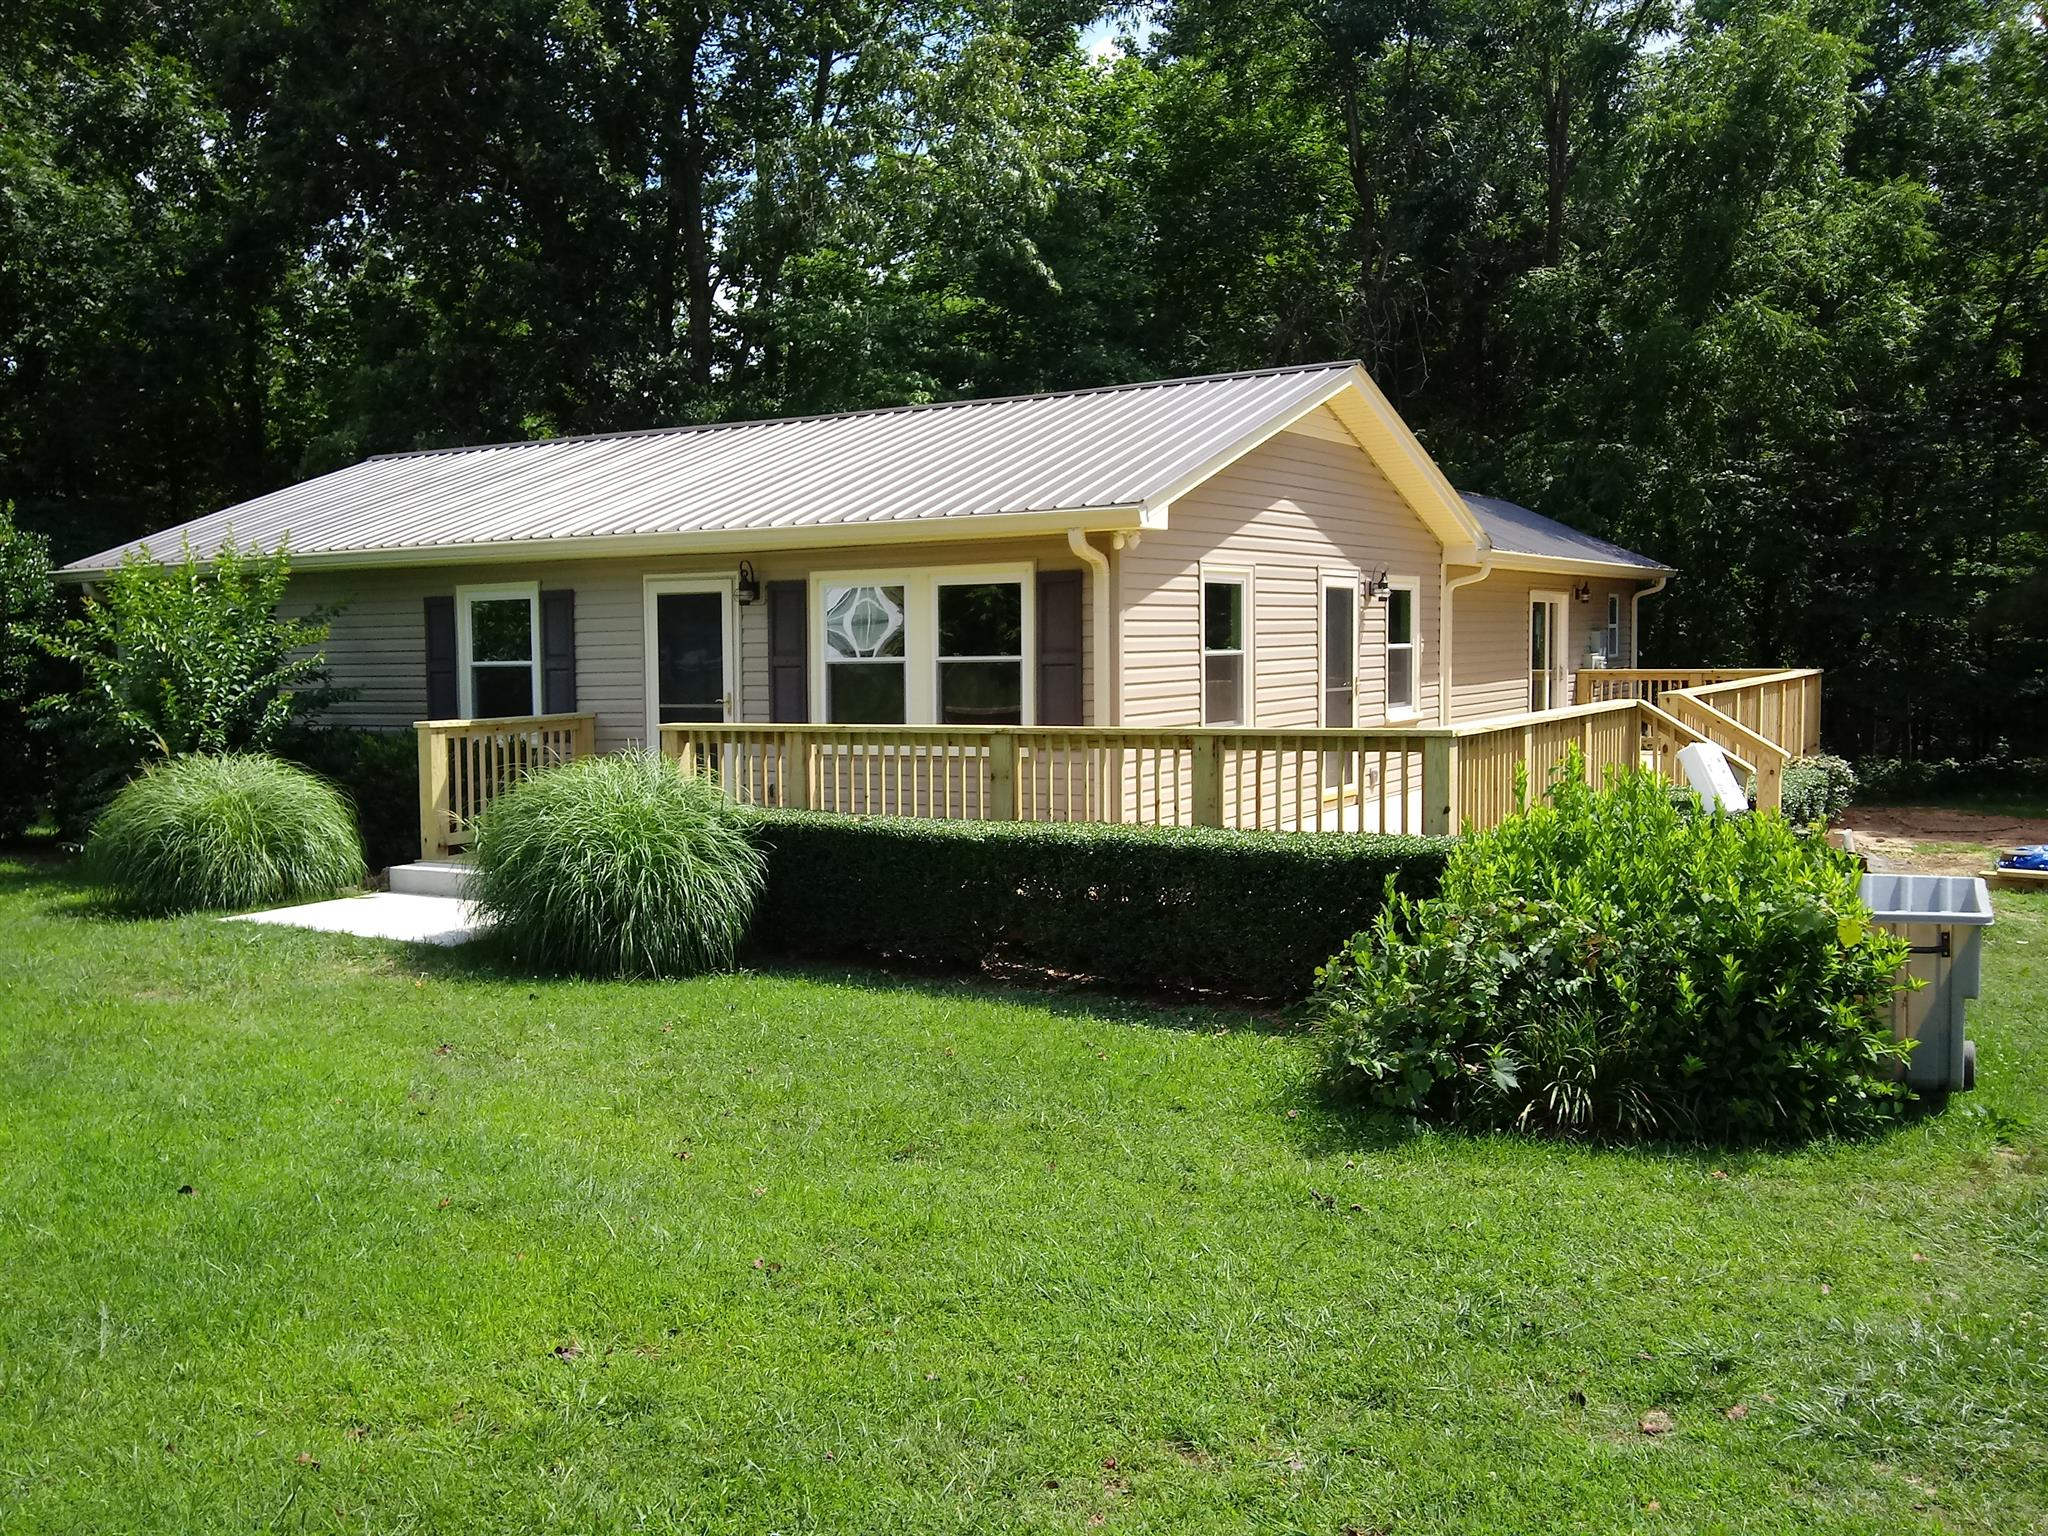 7329 Taylor Rd, Fairview, Tennessee